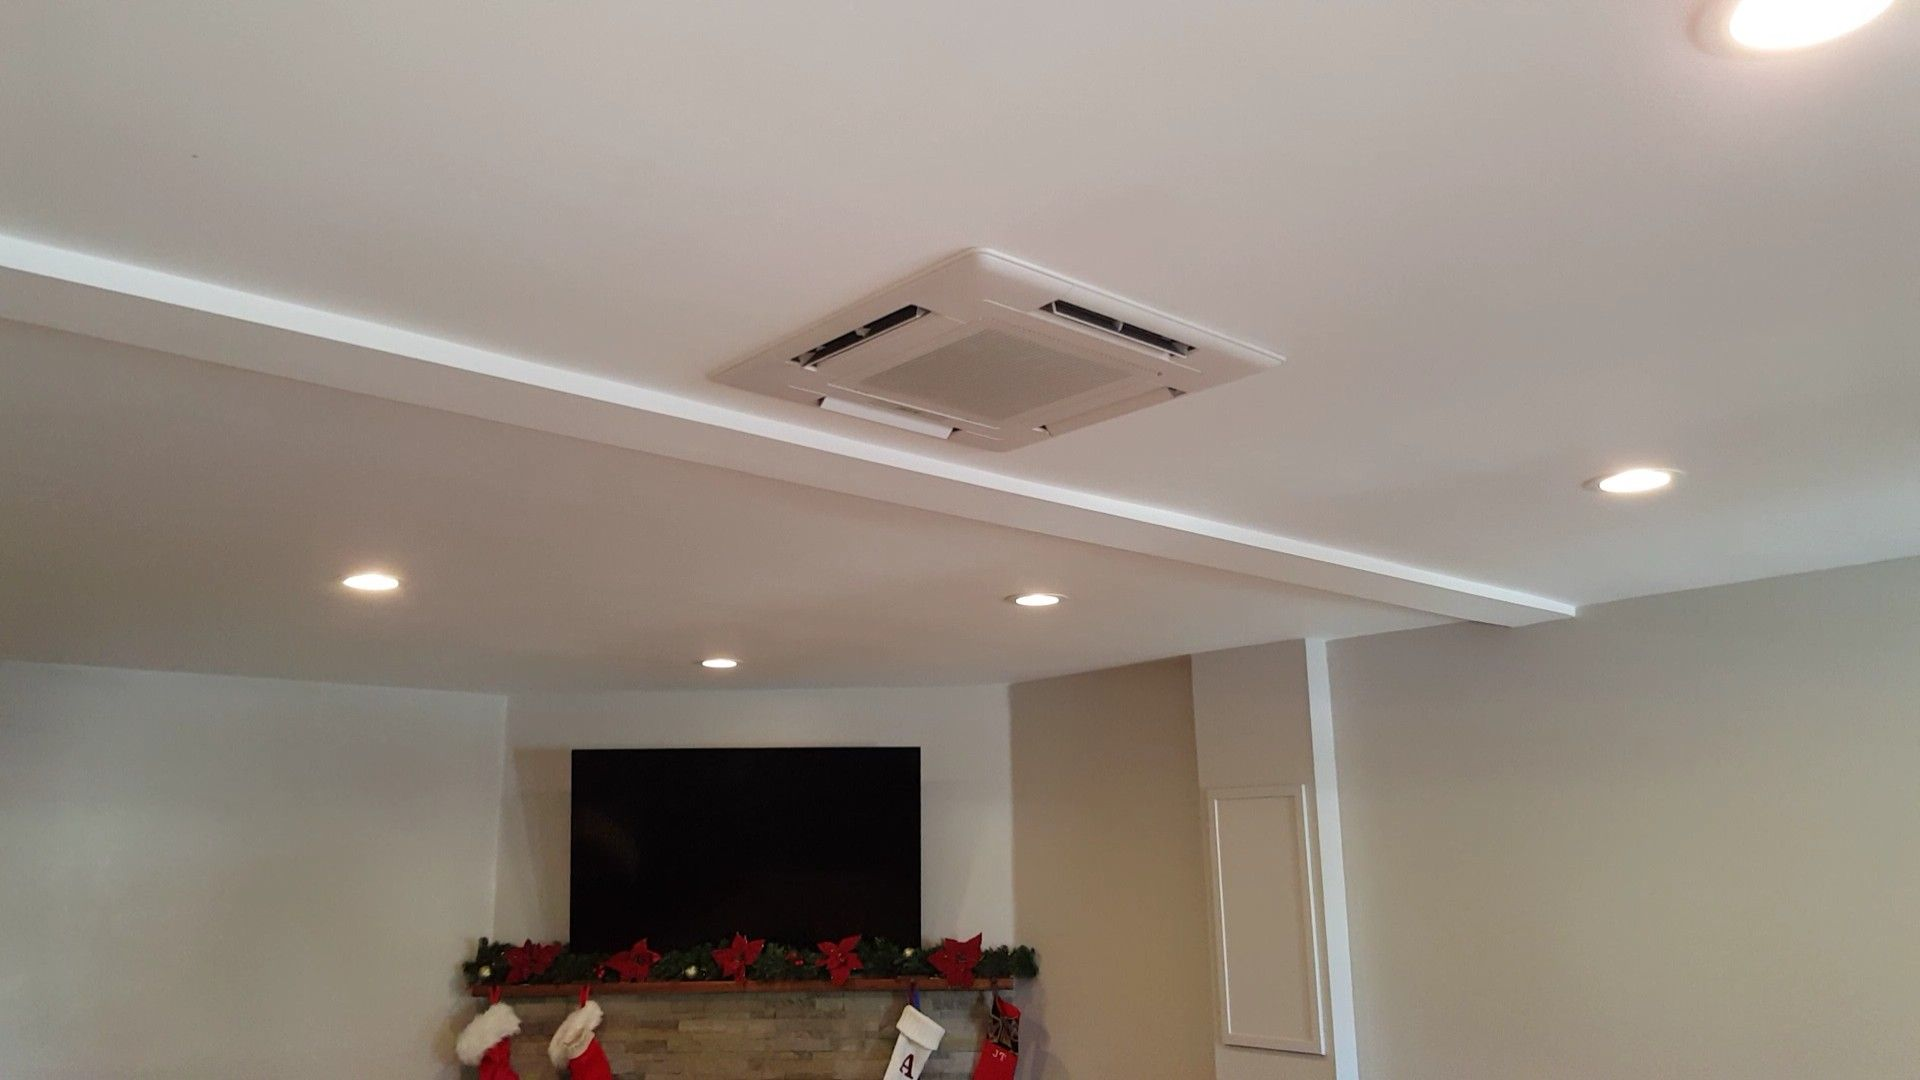 Mitsubishi Sez Recessed Ceiling Cassette Installed By